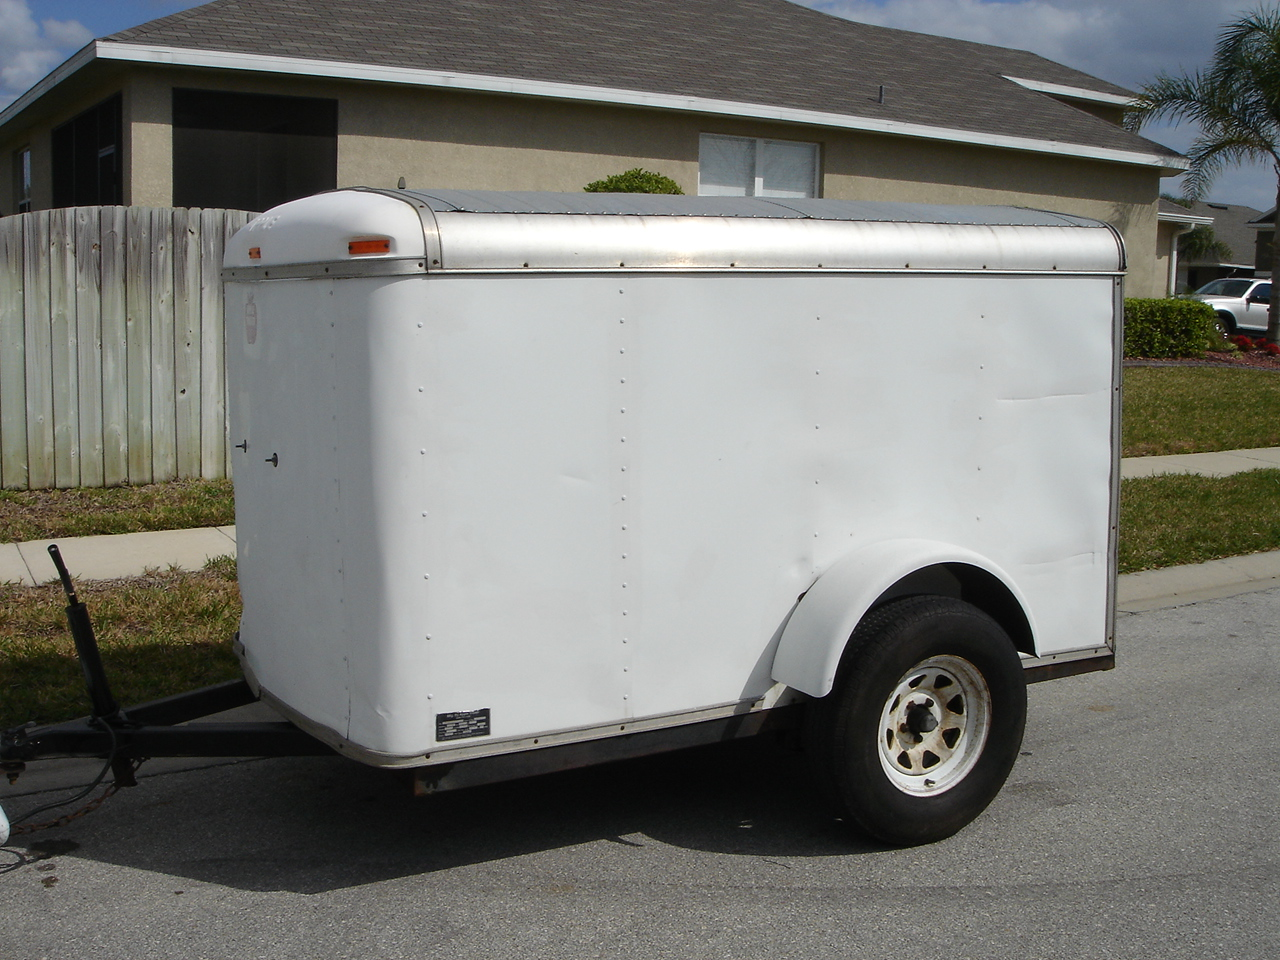 Sportbikes net view single post 5x8 enclosed trailer for sale